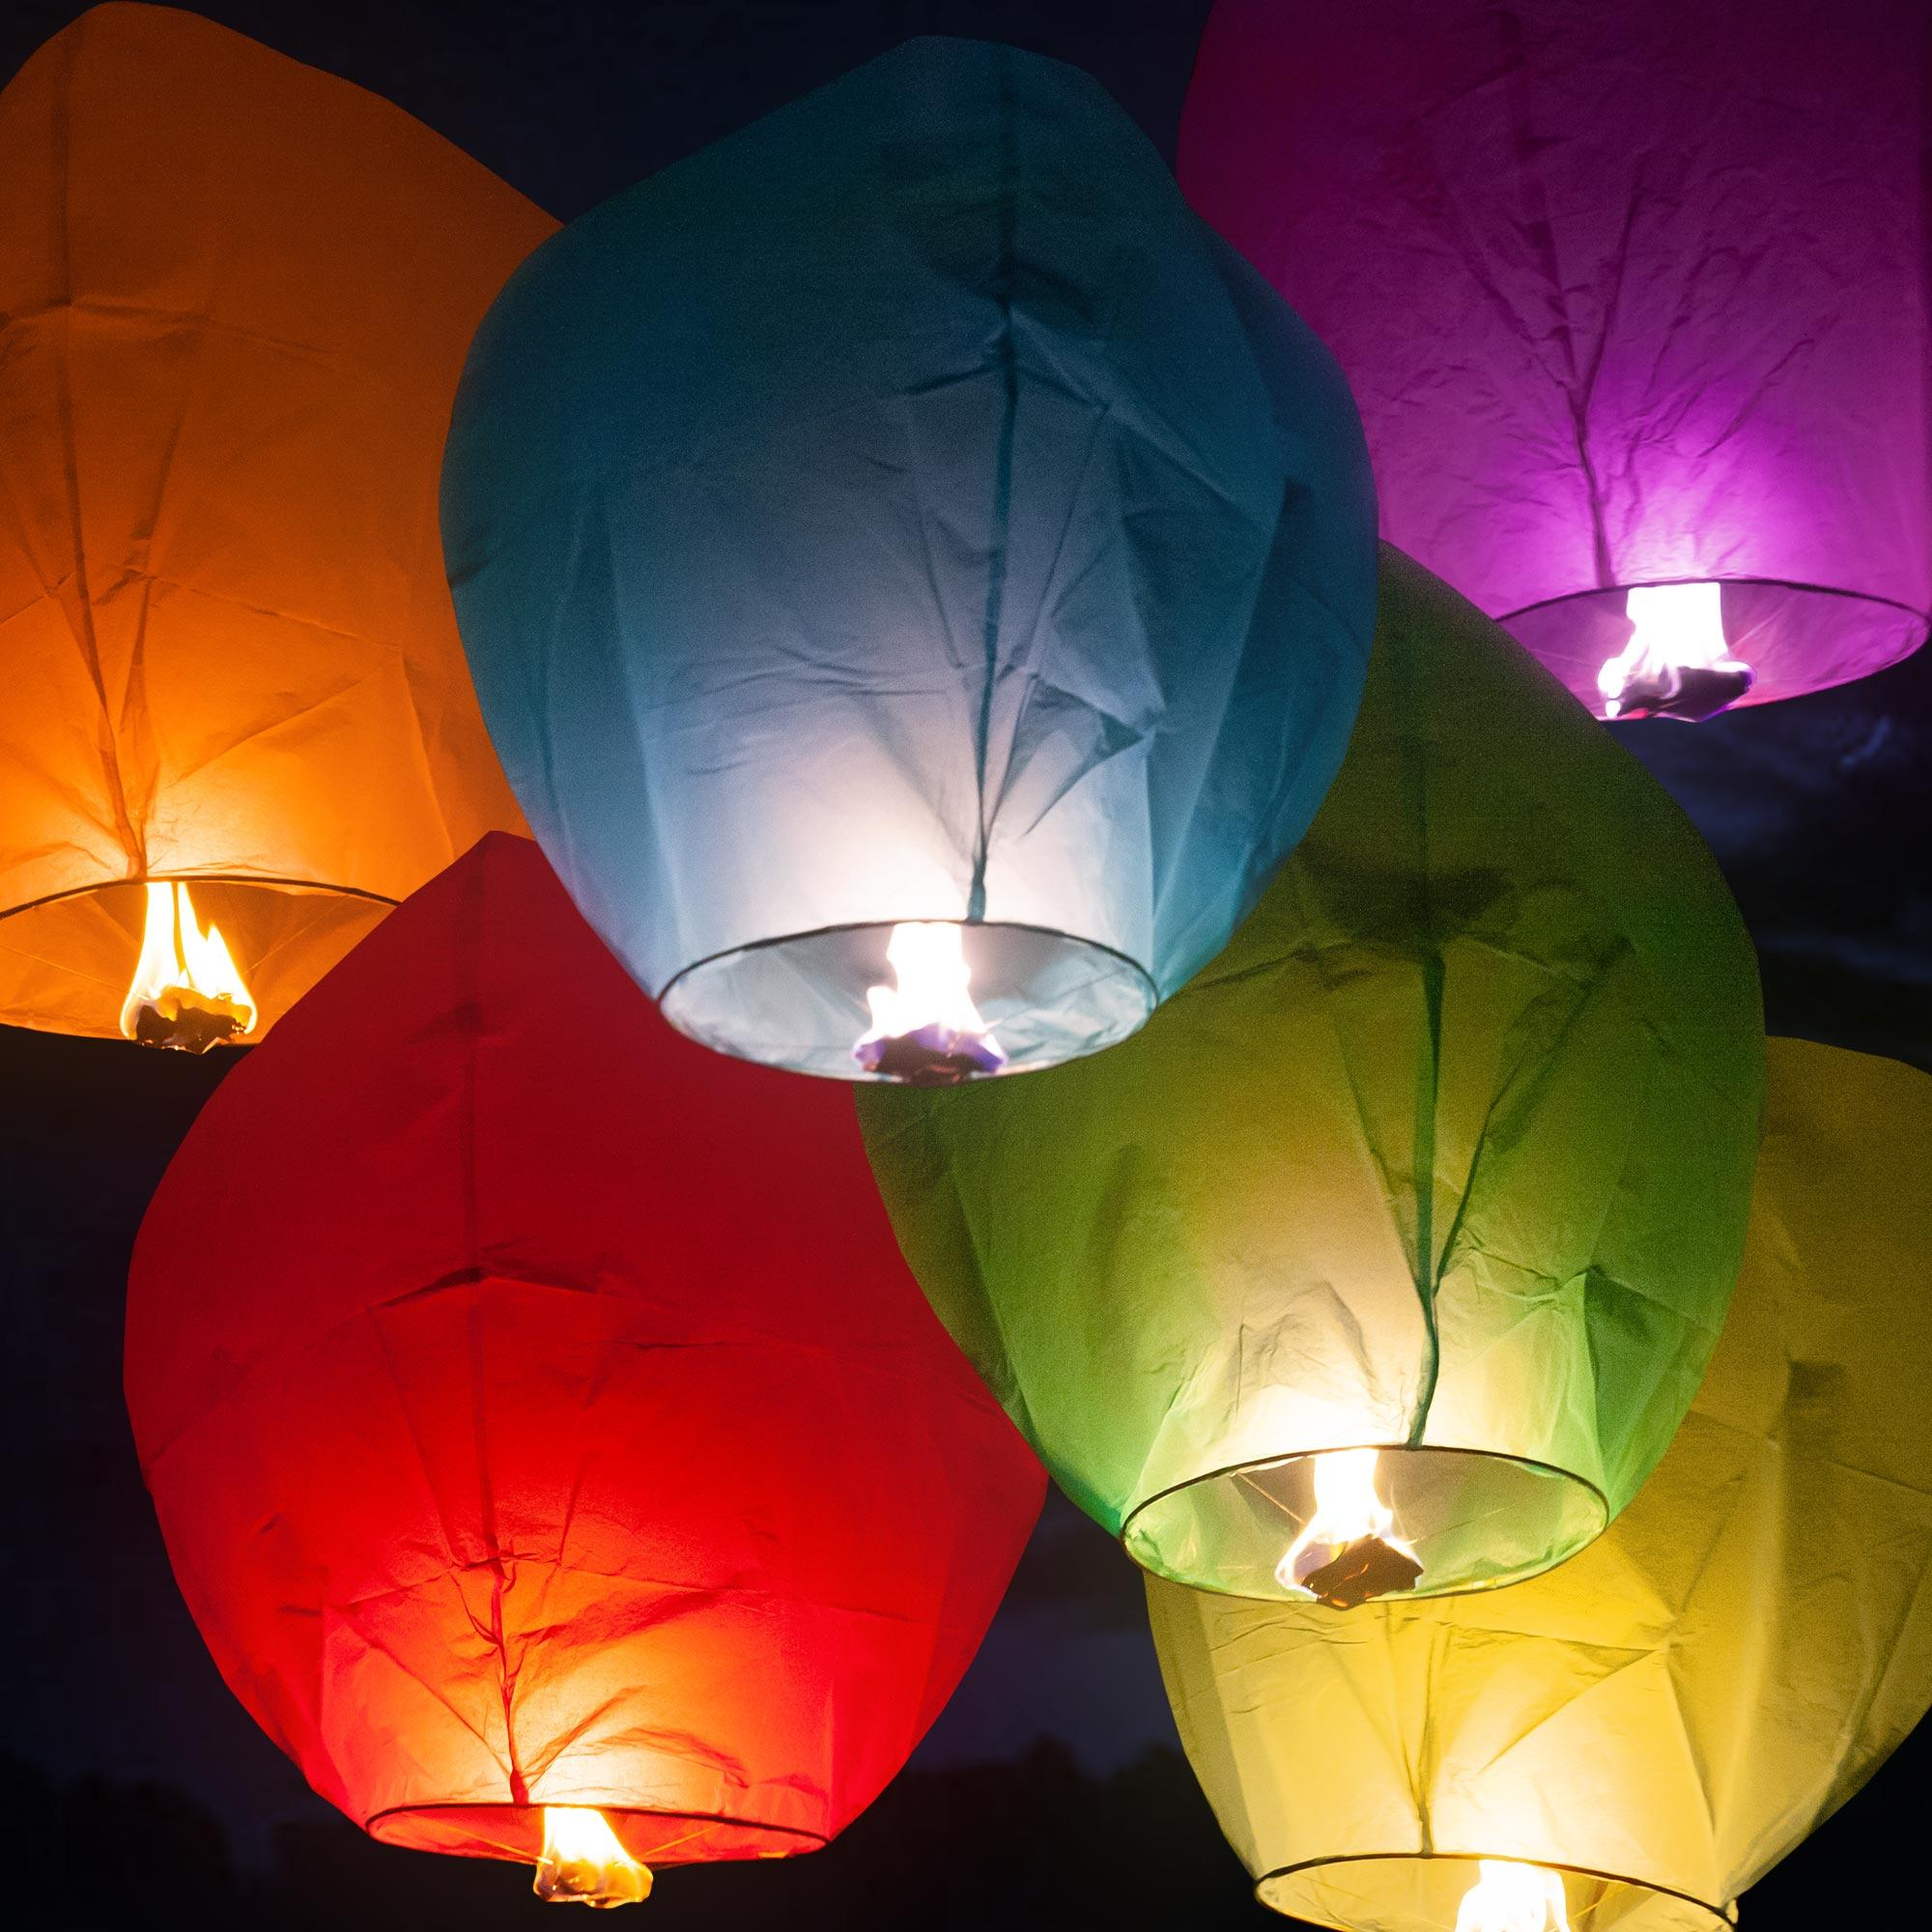 Sky Lanterns Chinese Paper Candle Lamp Fly for Wish Party Wedding -Pack of 2